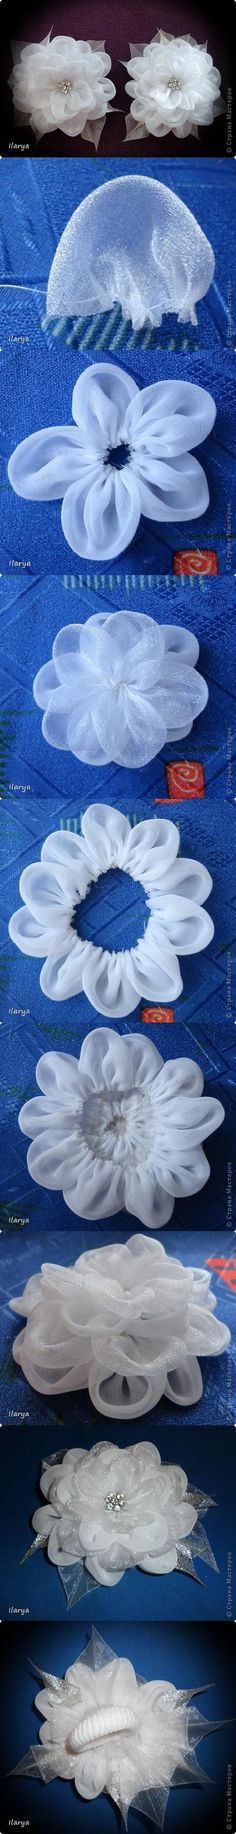 DIY Fabric Lust Flower DIY Projects This would be so cute for a hair pin! Ribbon Crafts, Flower Crafts, Fabric Crafts, Sewing Crafts, Sewing Projects, Diy Projects, Diy Crafts, Cloth Flowers, Felt Flowers